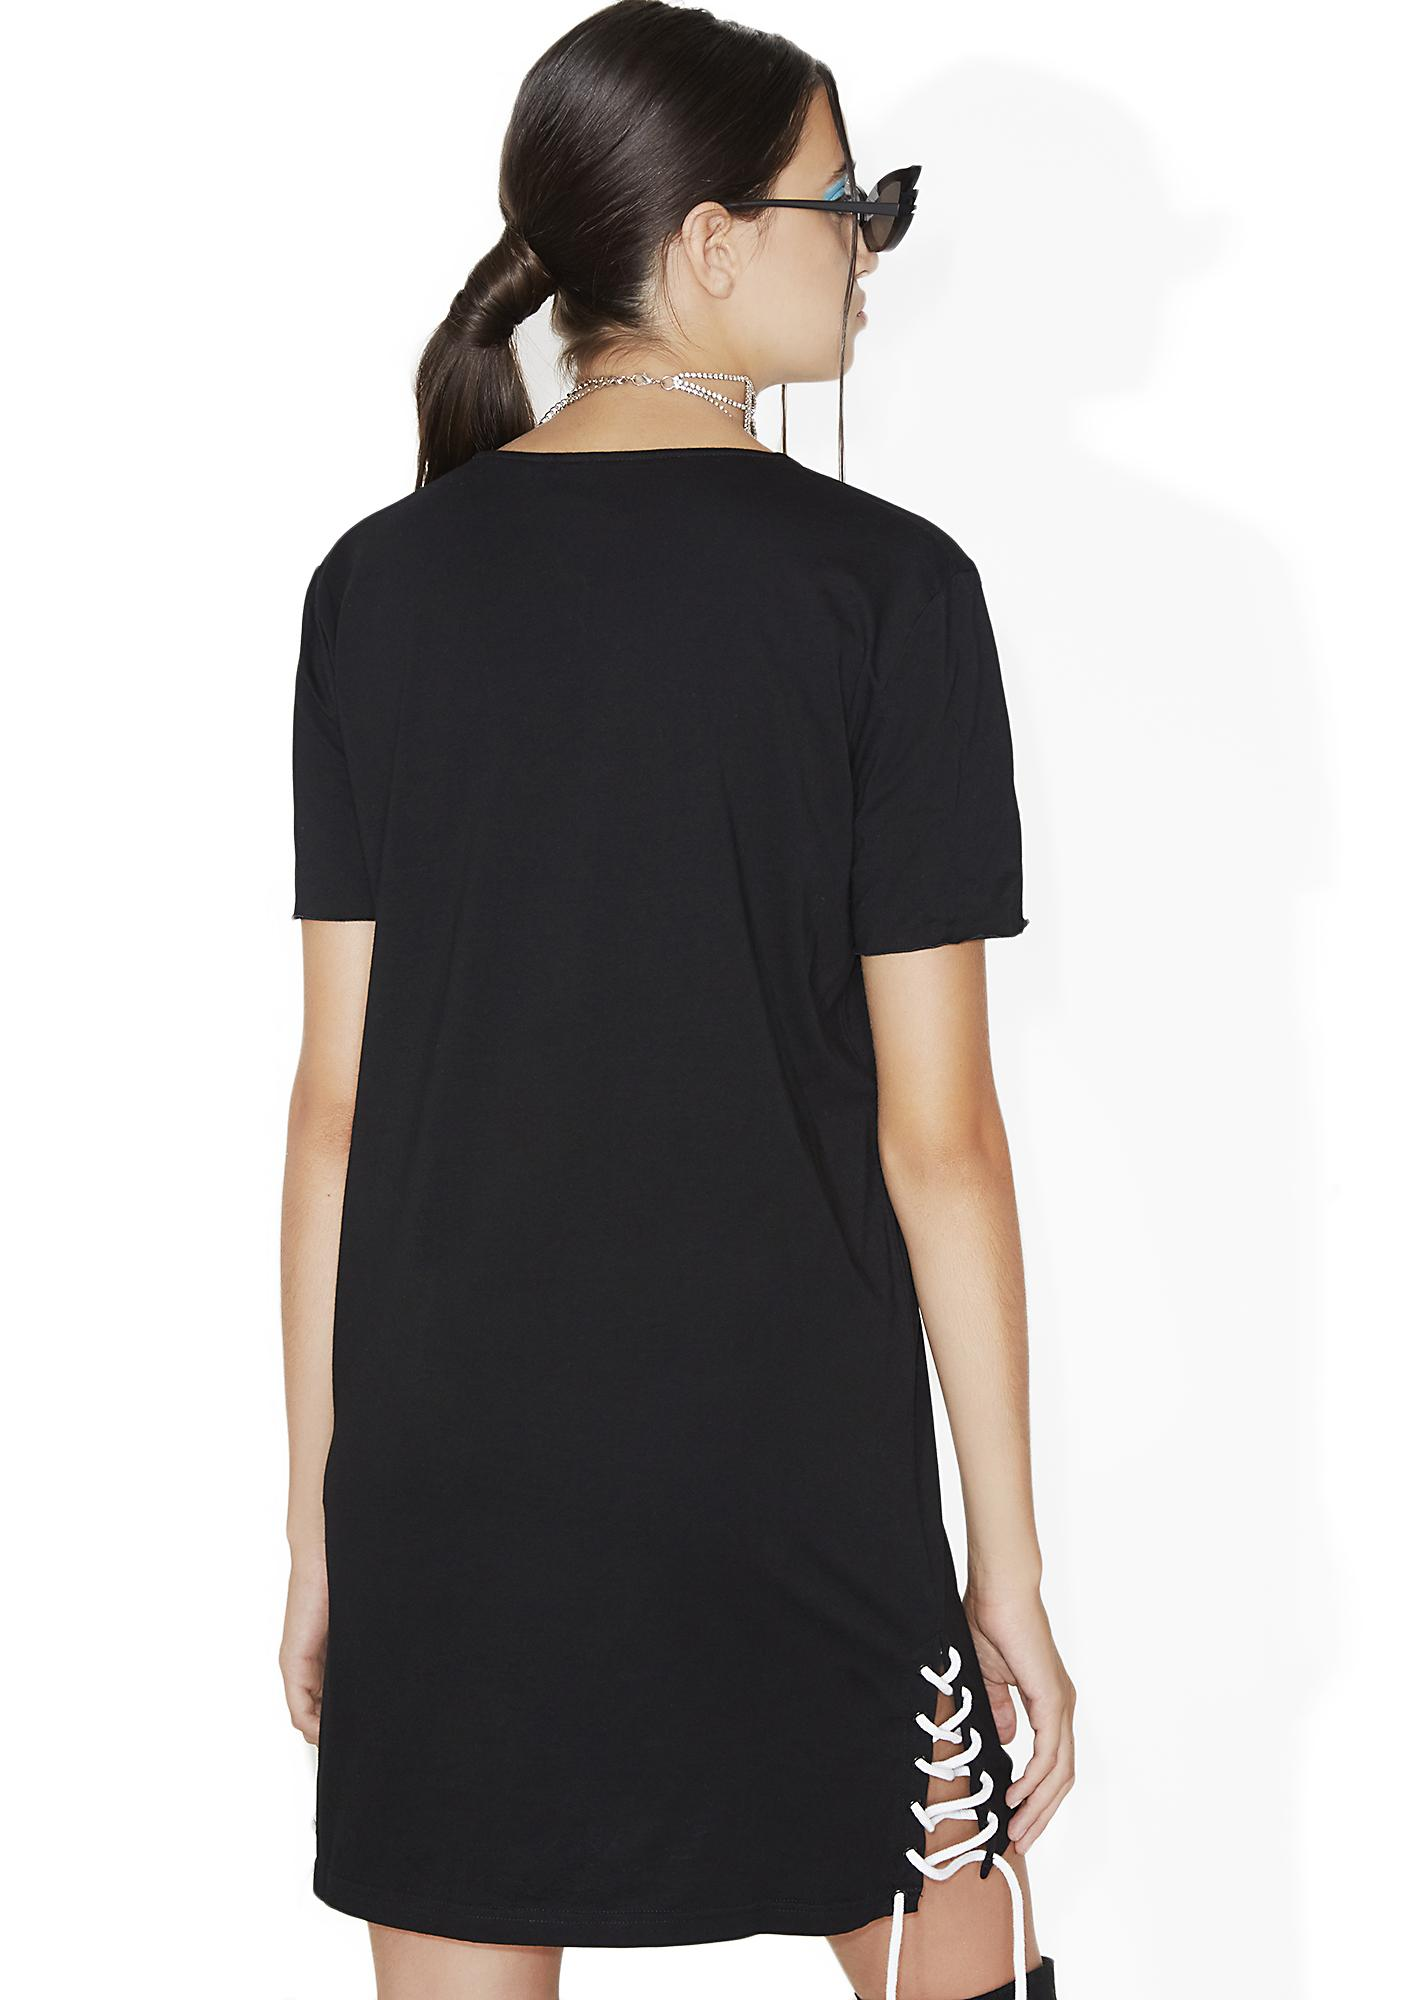 Nana Judy Oxford Side Lace Tee-Shirt Dress